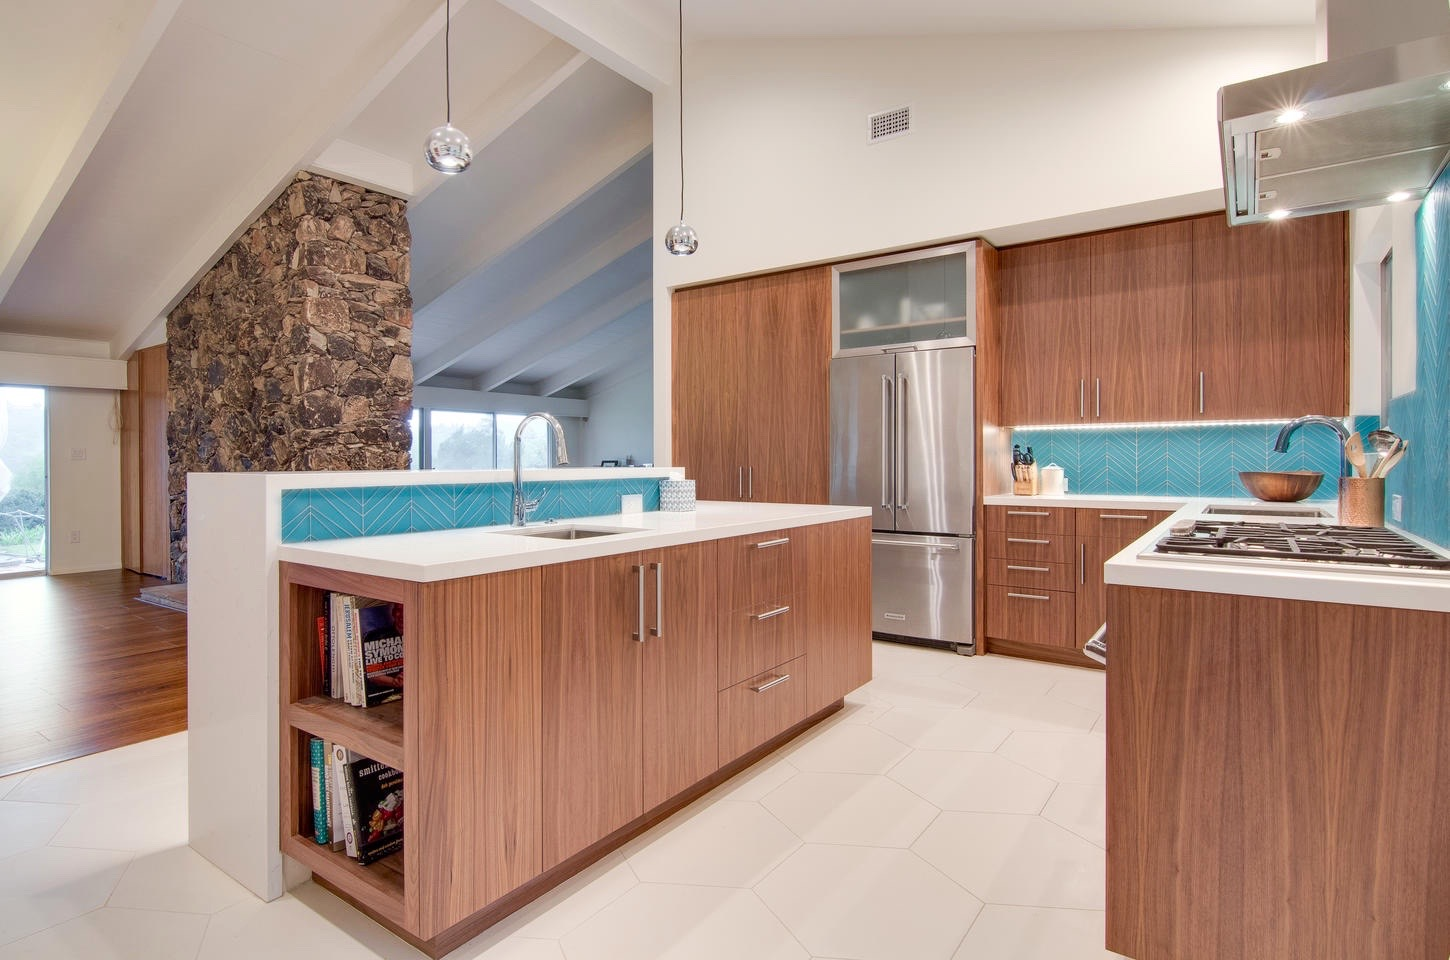 MIDCENTURY MODERN REMODEL - Creating a More Inviting Space to Entertain and Relax